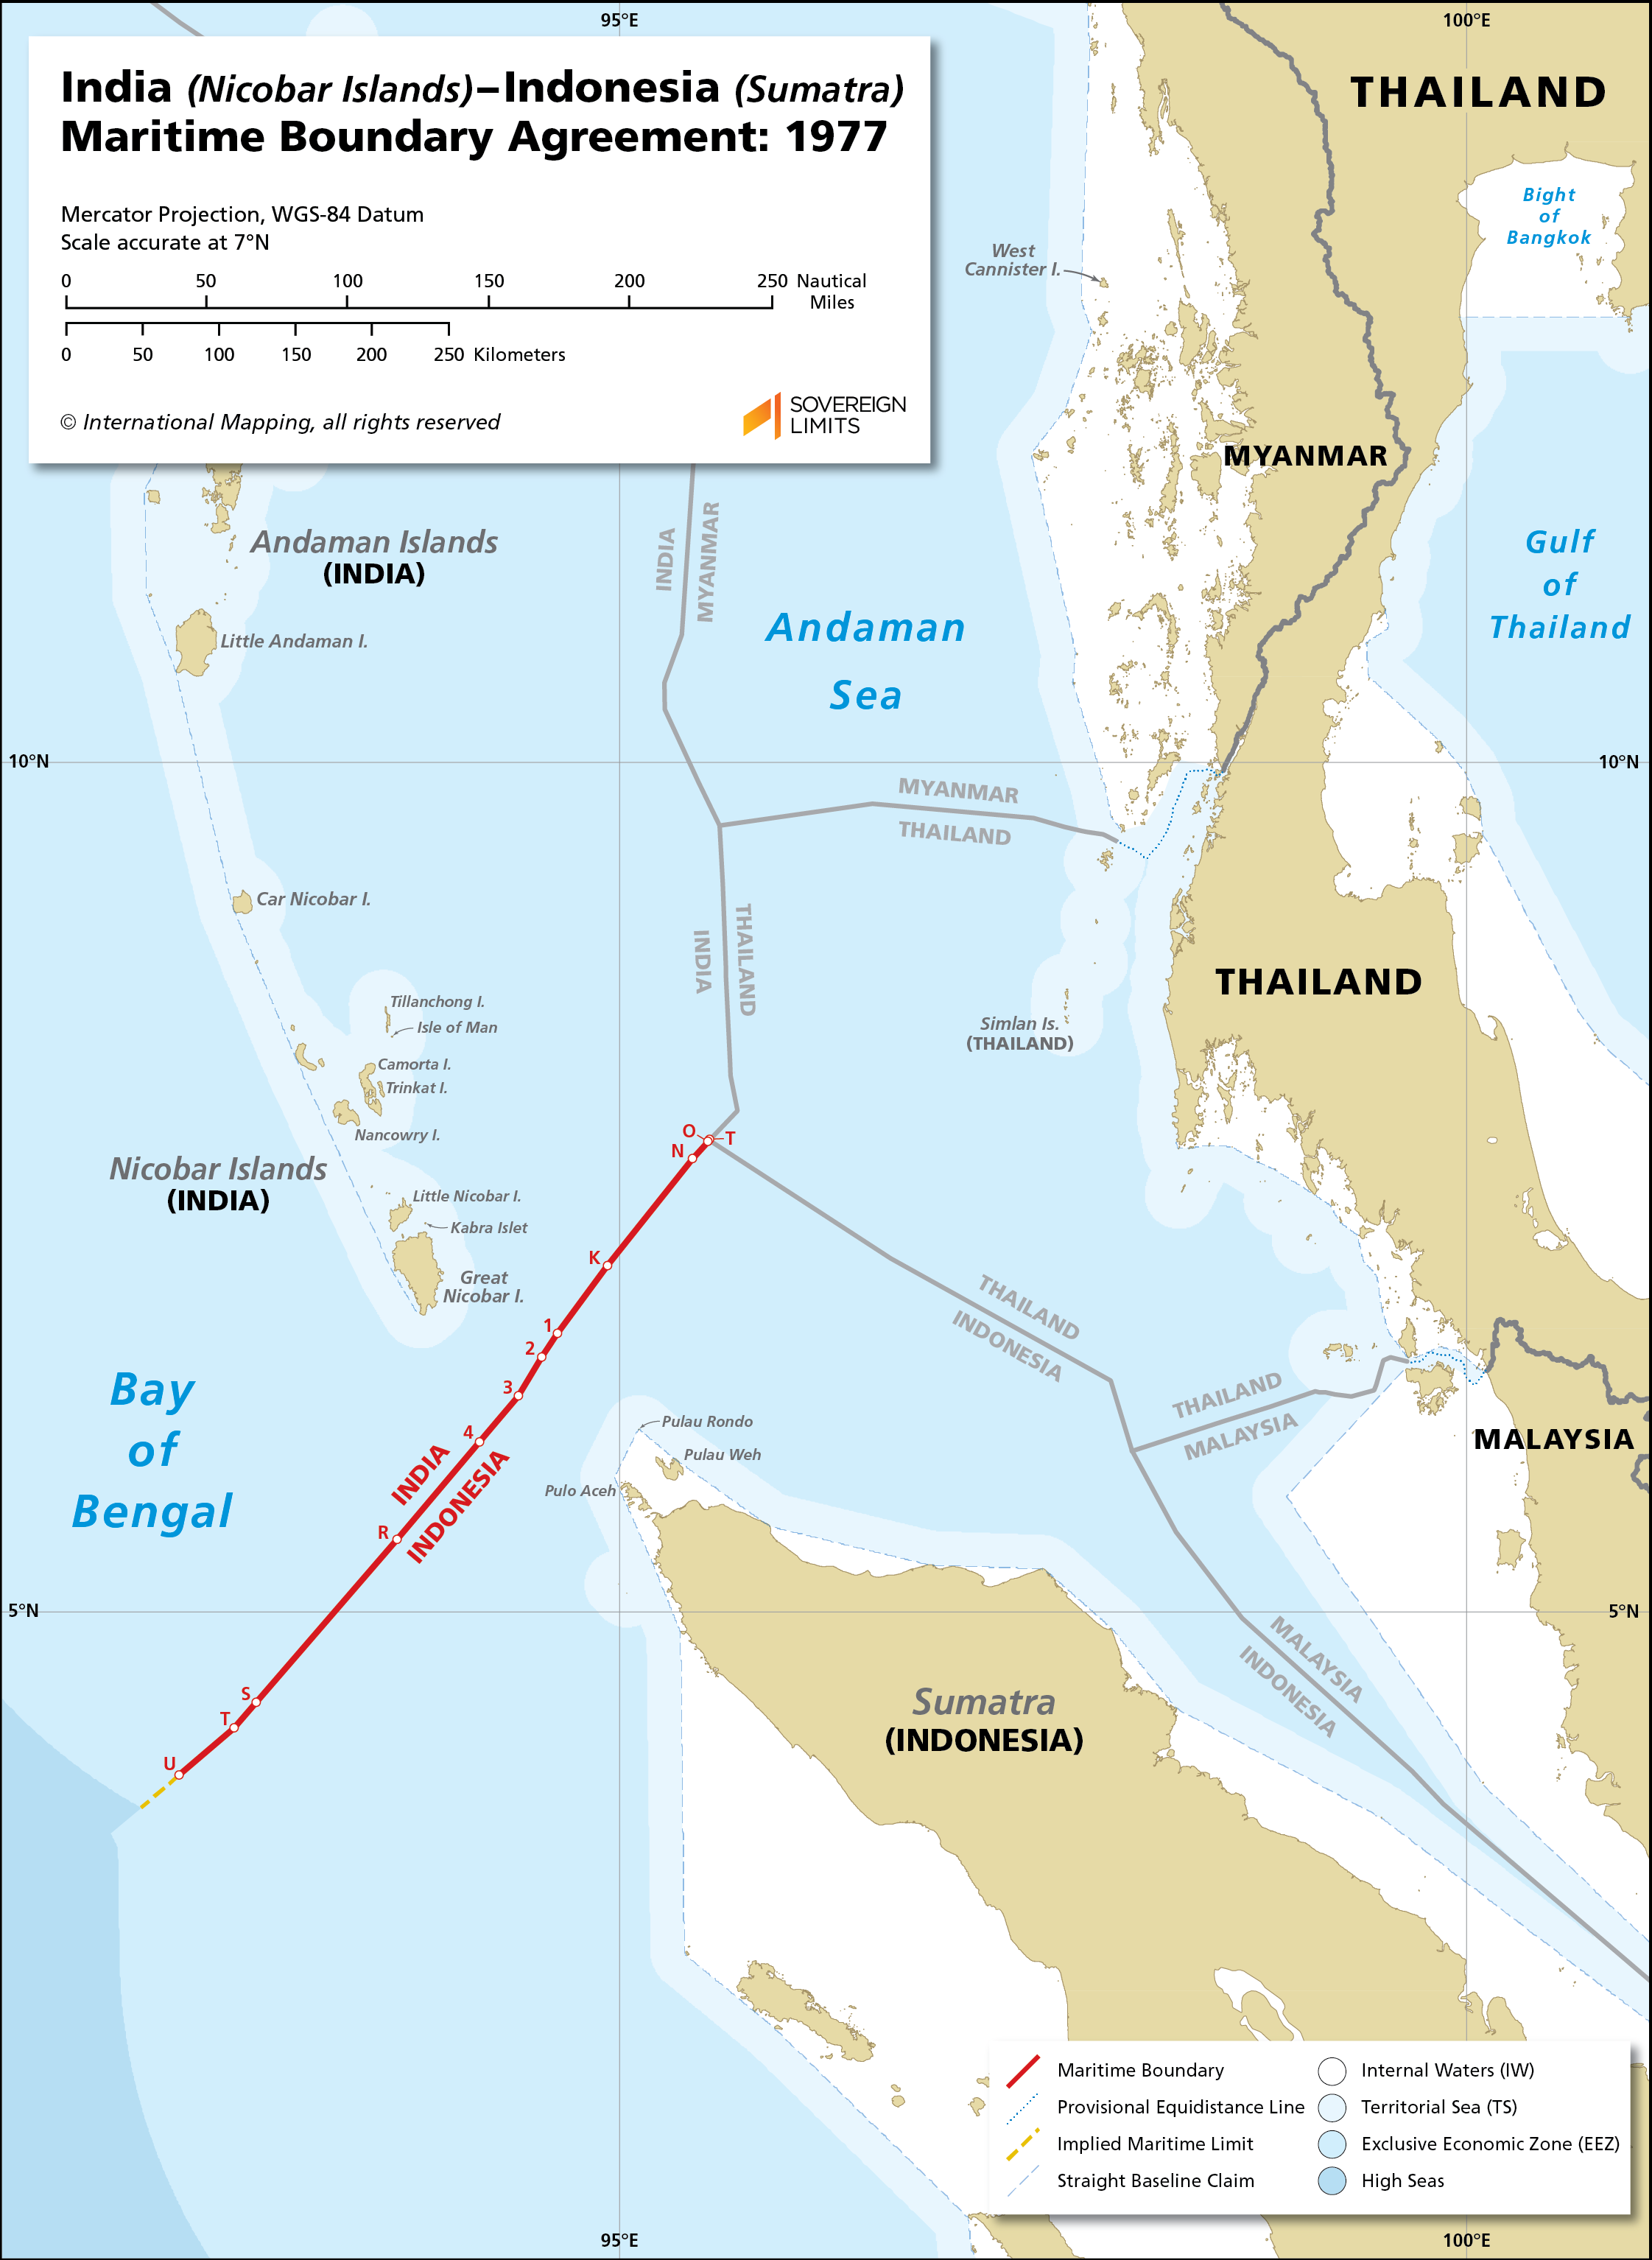 Map showing the maritime boundary between India and Indonesia